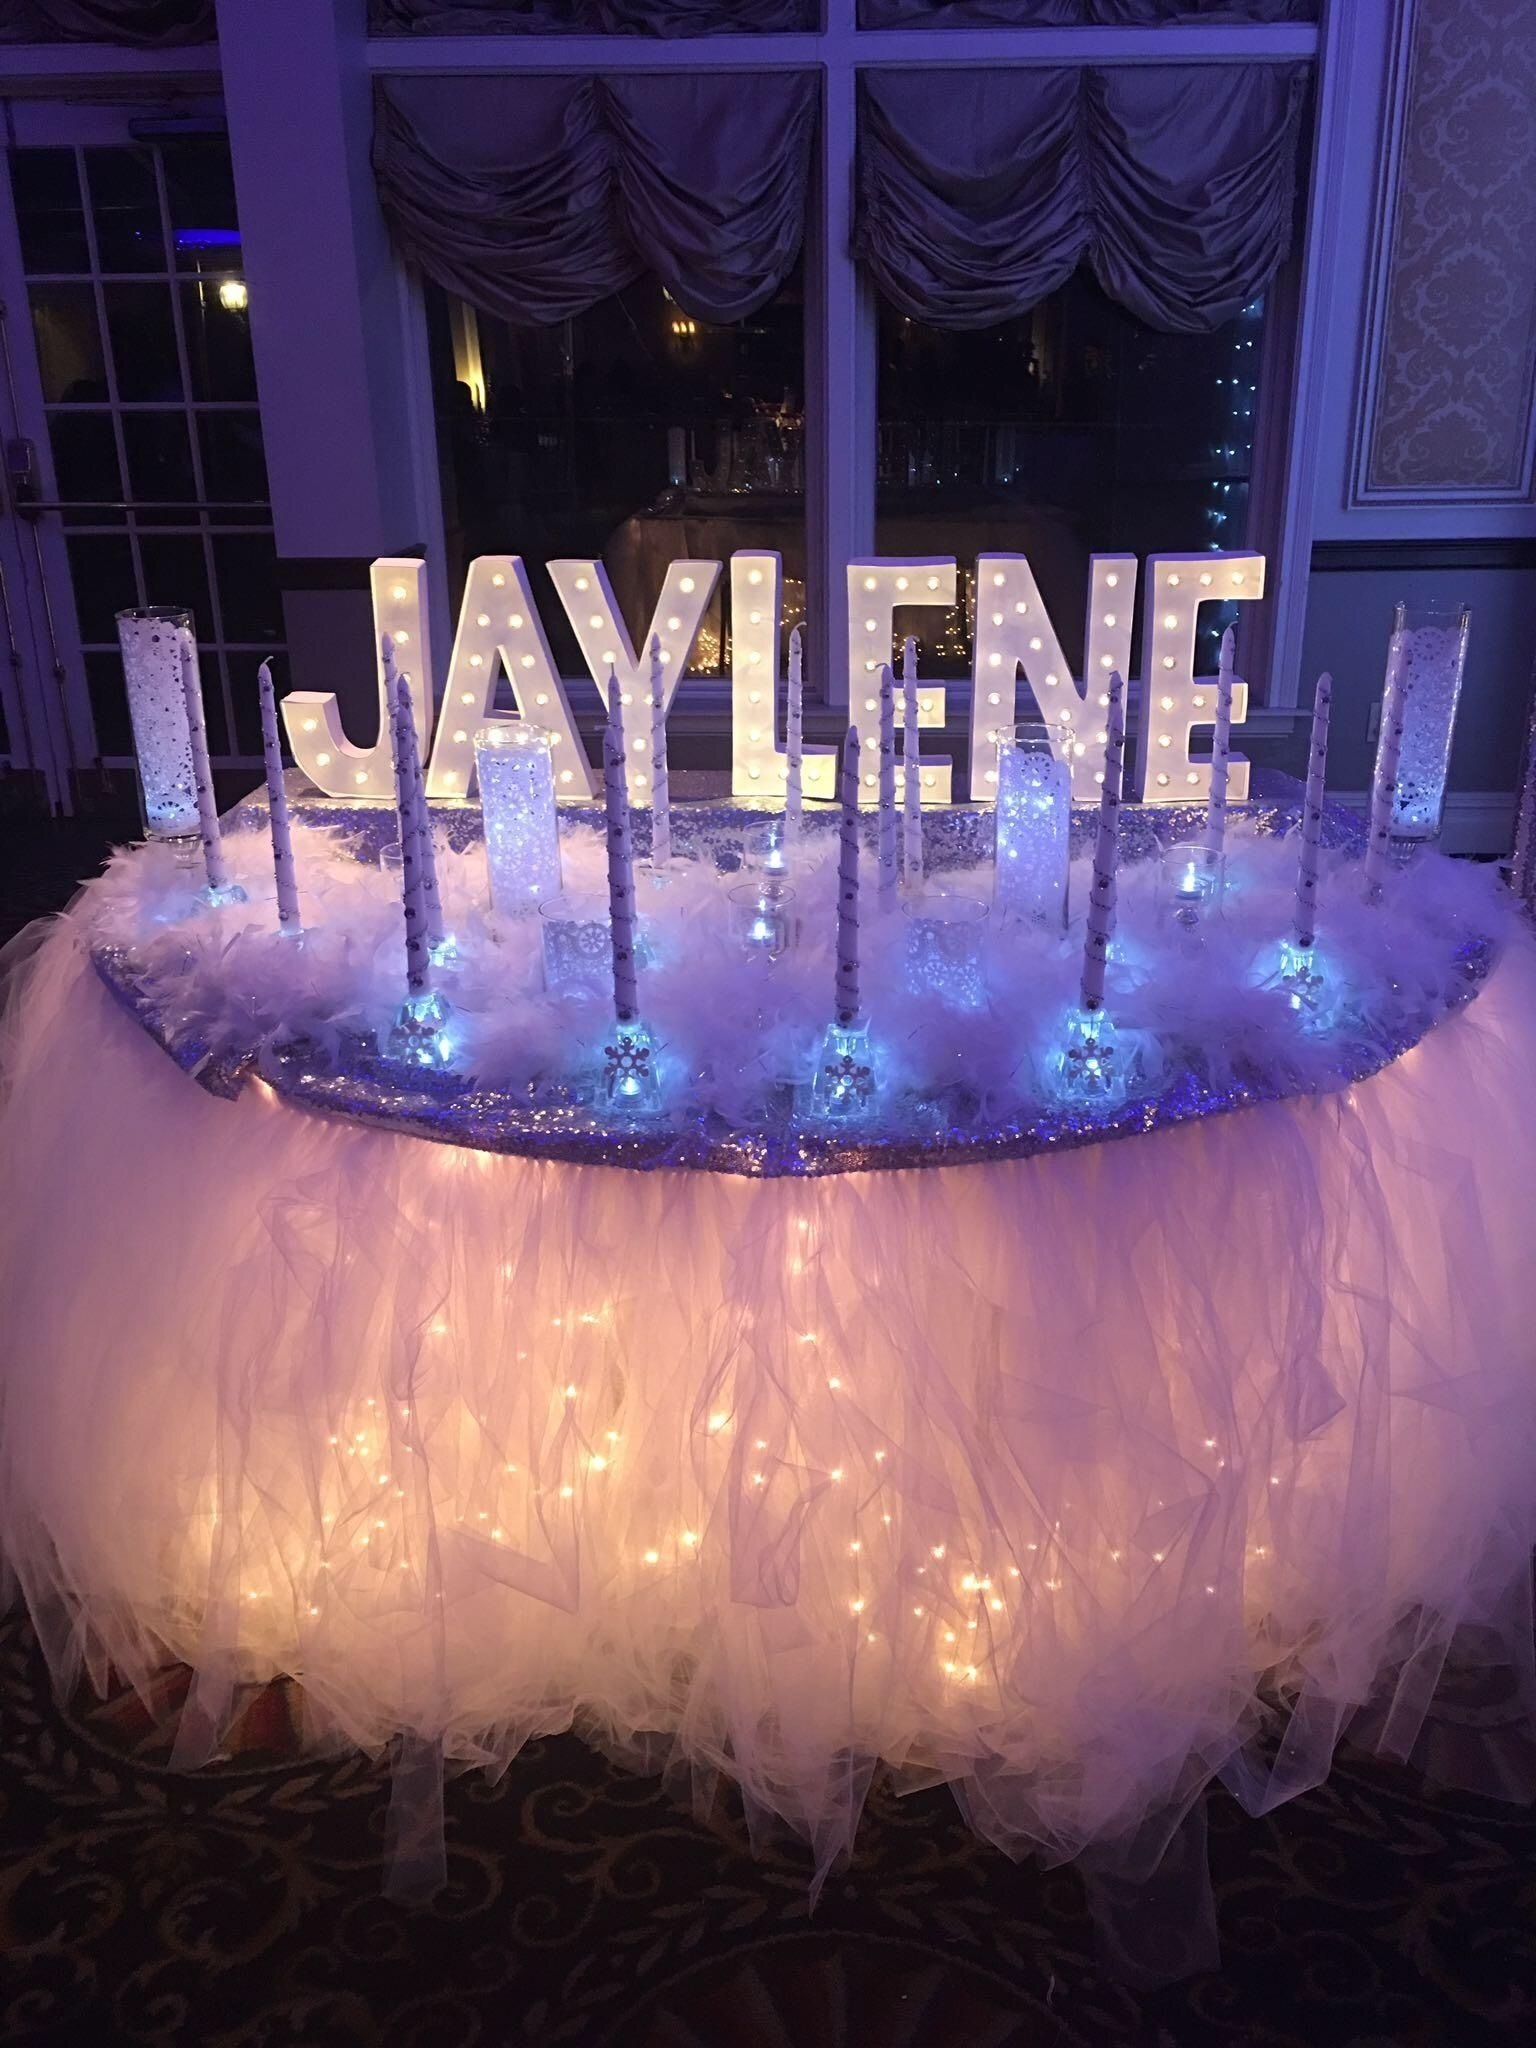 candle ceremony set-up - winter wonderland sweet 16 | winter